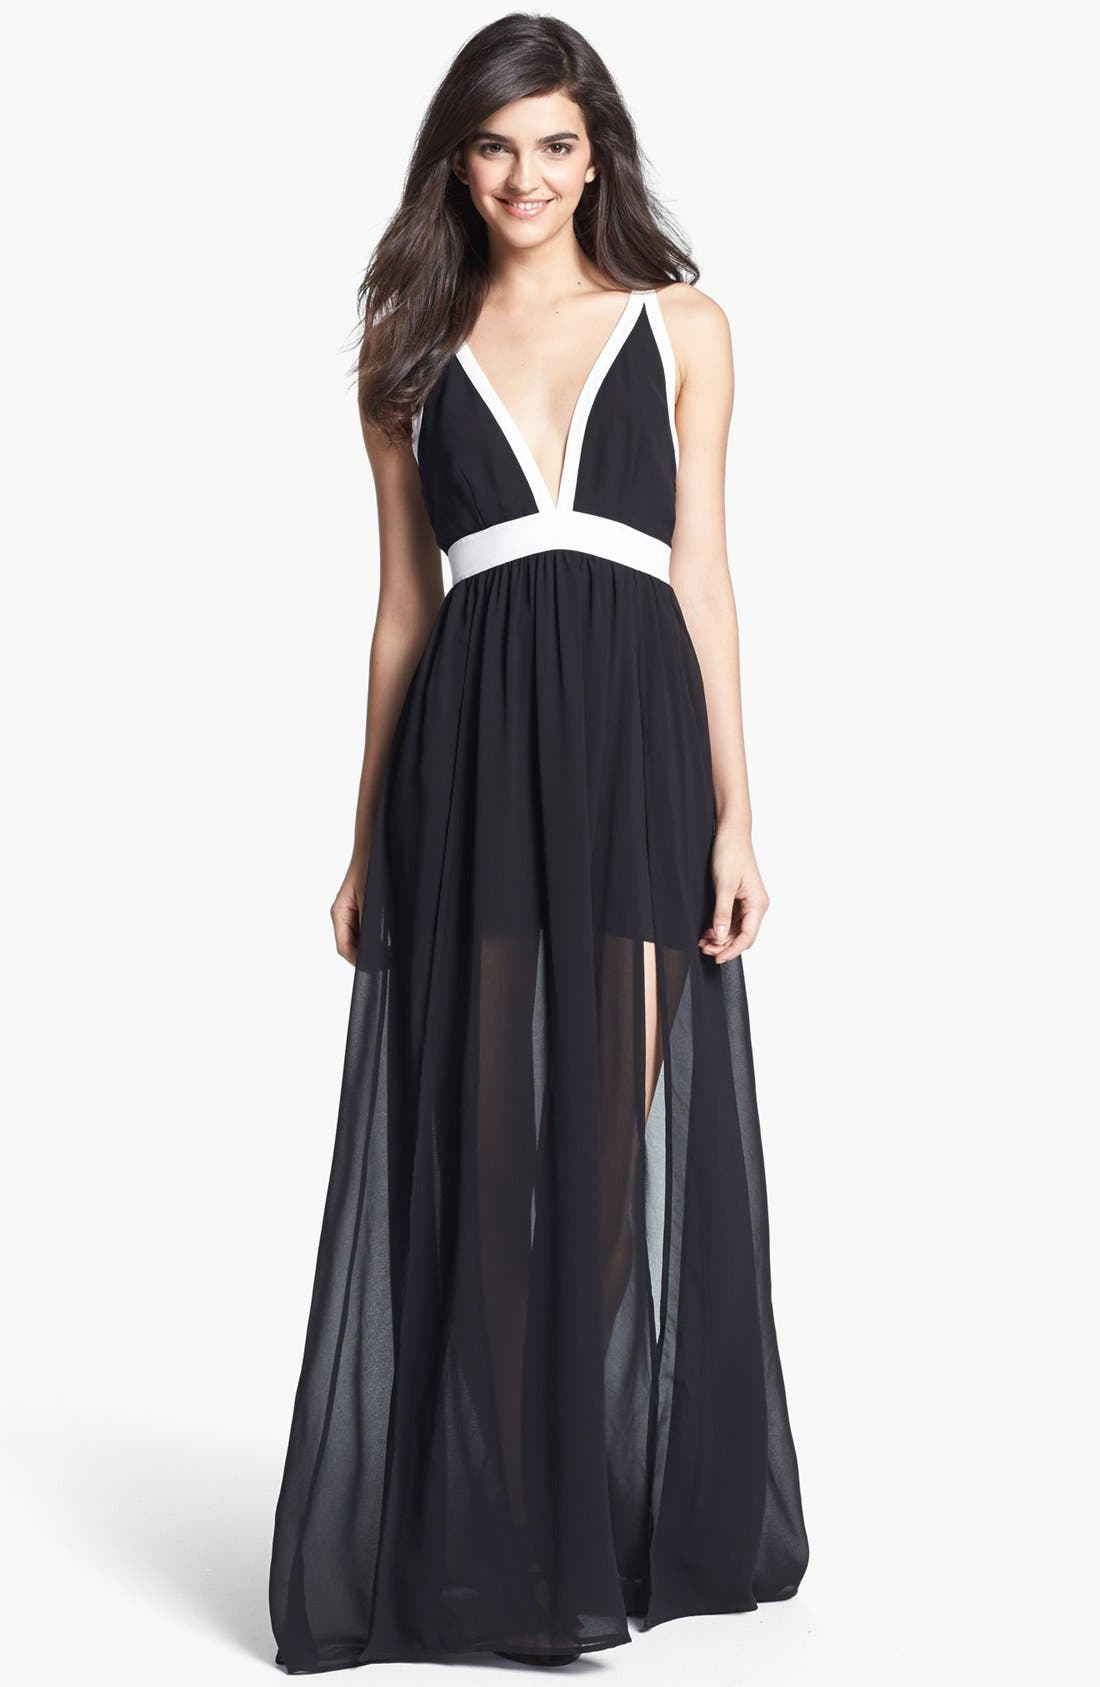 Alternate Image 1 Selected - Keepsake the Label 'Eyes Wide Open' Contrast Trim Maxi Dress